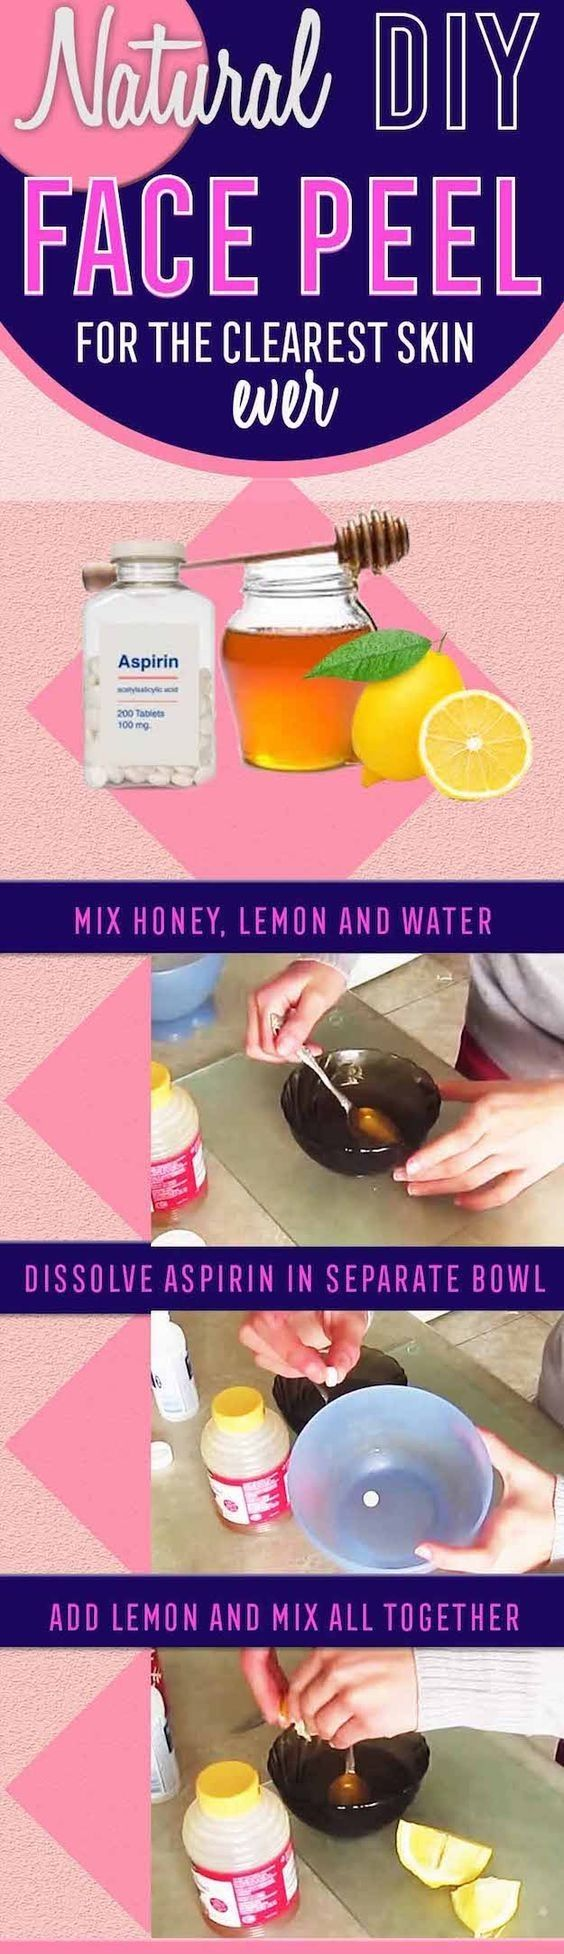 how to get rid of blackheads on your nose,  how to get rid of blackheads at home,  how to get rid of blackheads on chin,  how to get rid of blackheads diy,  blackheads removal products,  how to get rid of blackheads on cheeks,  how to get rid of blackheads fast,  how to remove blackheads from nose permanently,